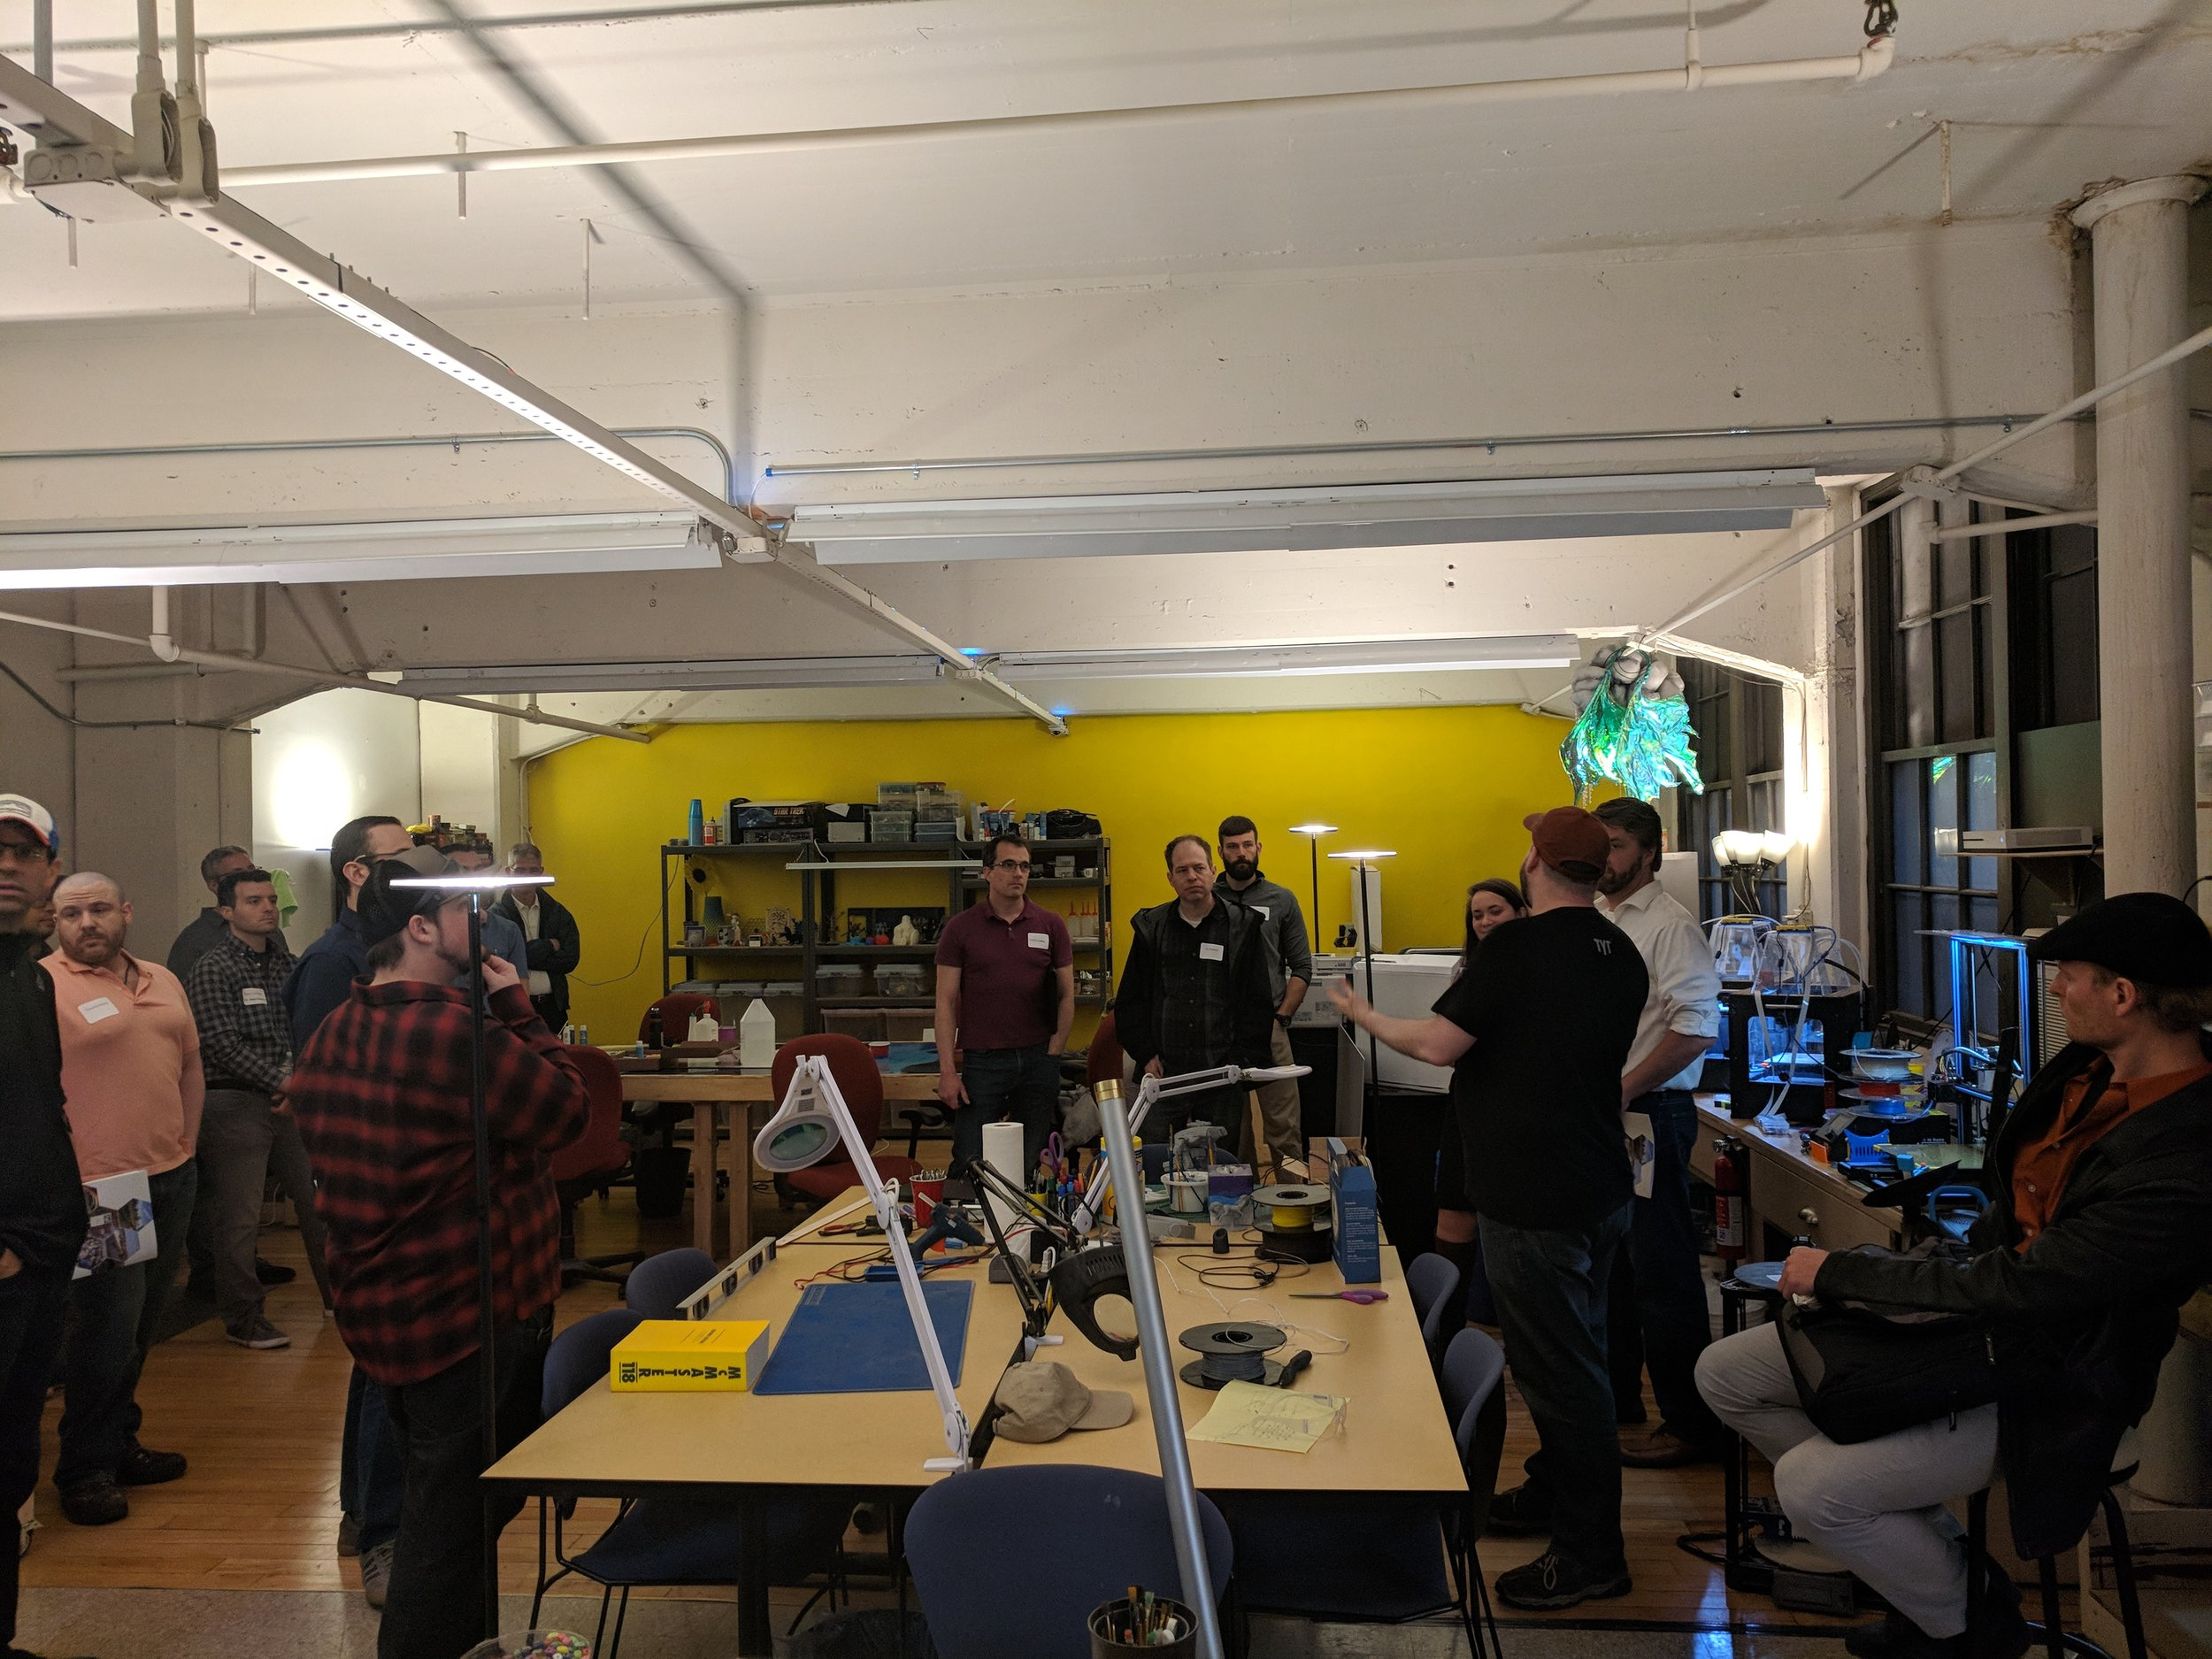 Classes & Events - Classes and Workshops covering 3D Printing, Electronics and More. We also host Group Events. We even have a weekly Board Game Night every Friday